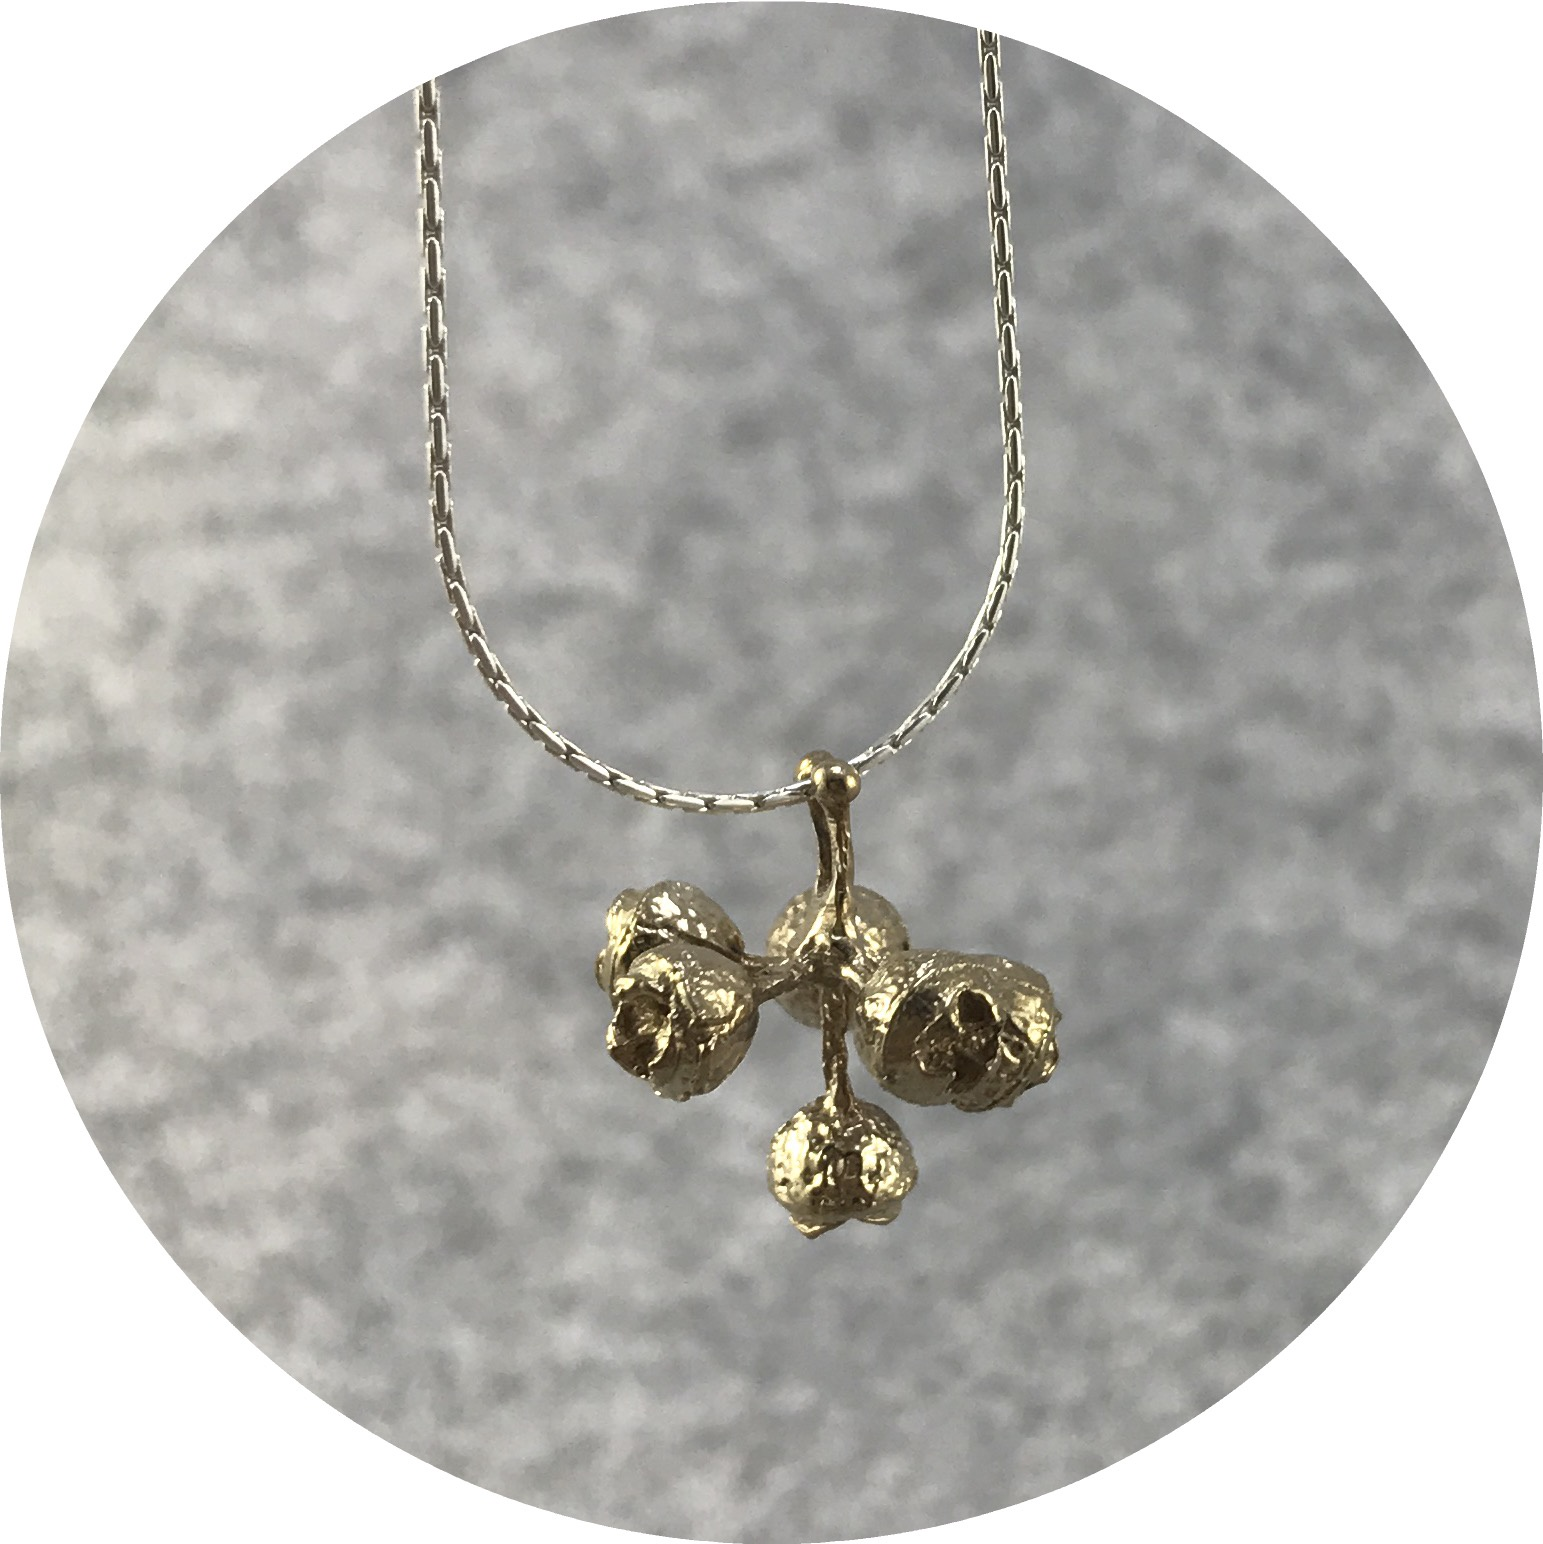 Abby Seymour- Gumnut Cluster Amulet Necklace. Brass and Sterling Silver.